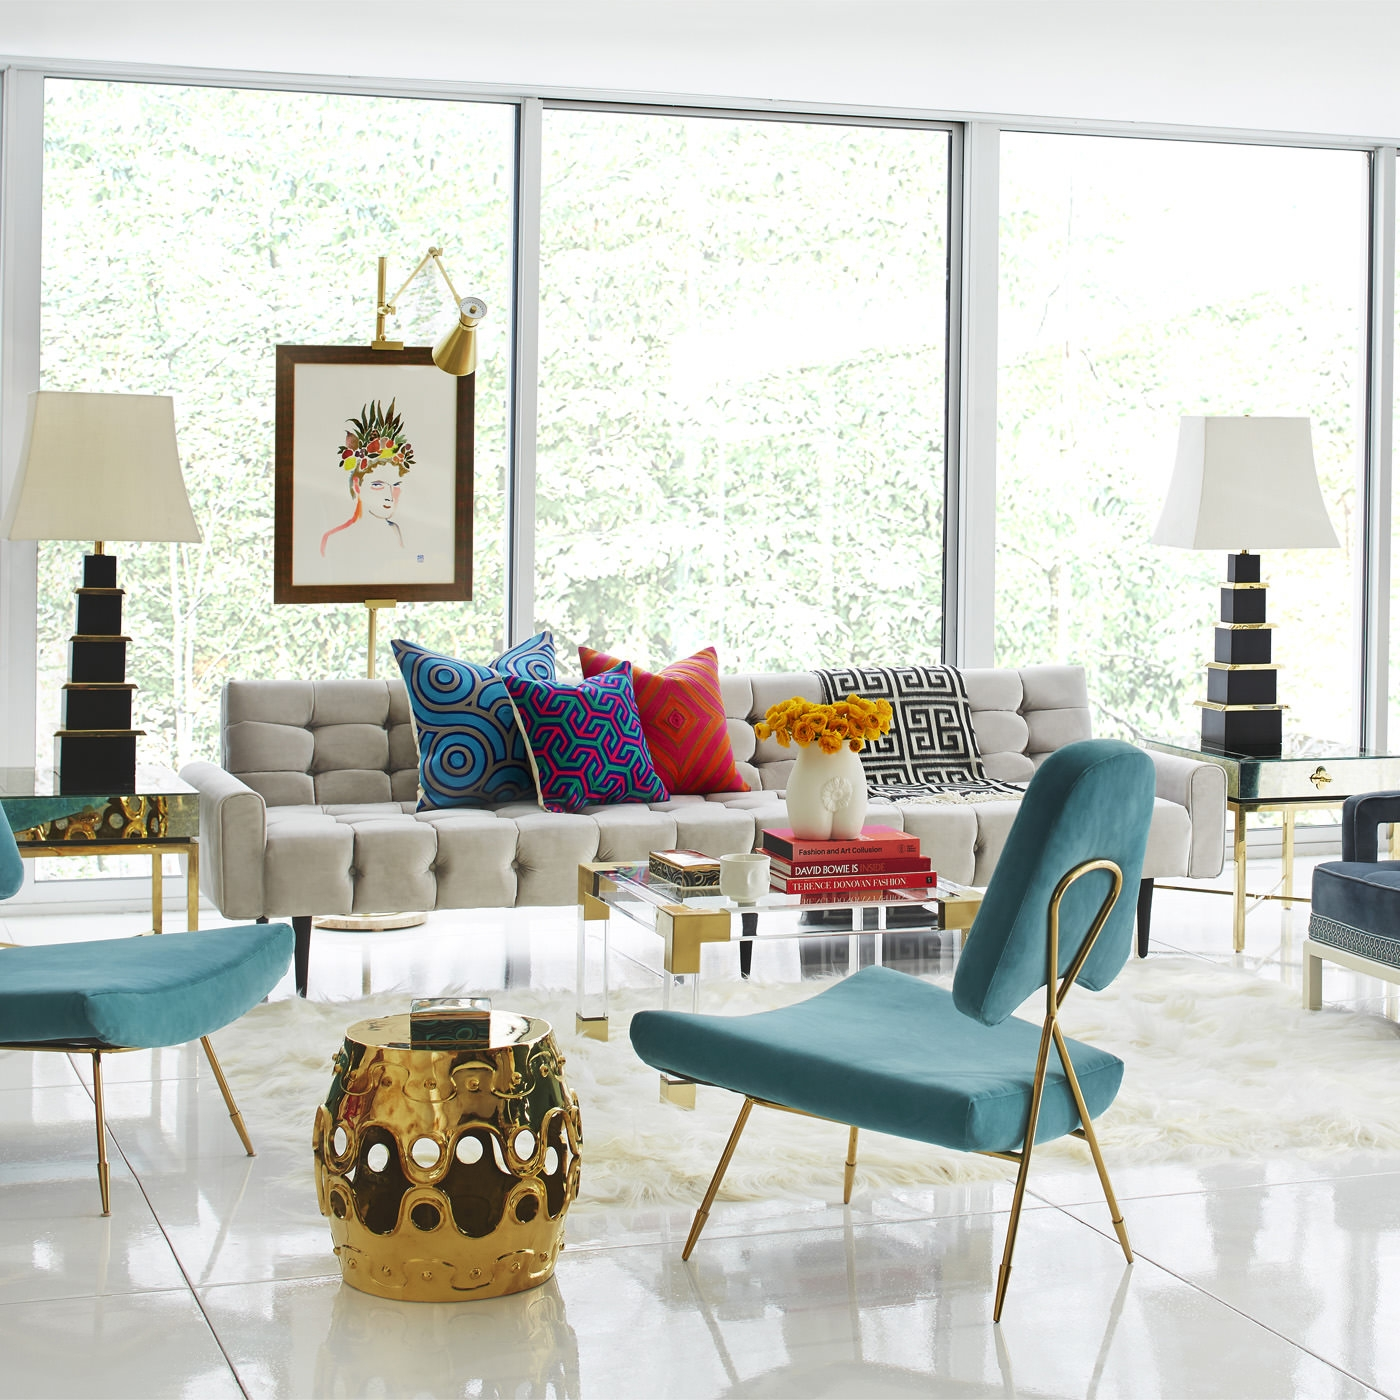 10 Cheerful Winter Living Rooms by Jonathan Adler  winter living rooms 10 Cheerful Winter Living Rooms by Jonathan Adler 10 Cheerful Winter Living Rooms by Jonathan Adler2